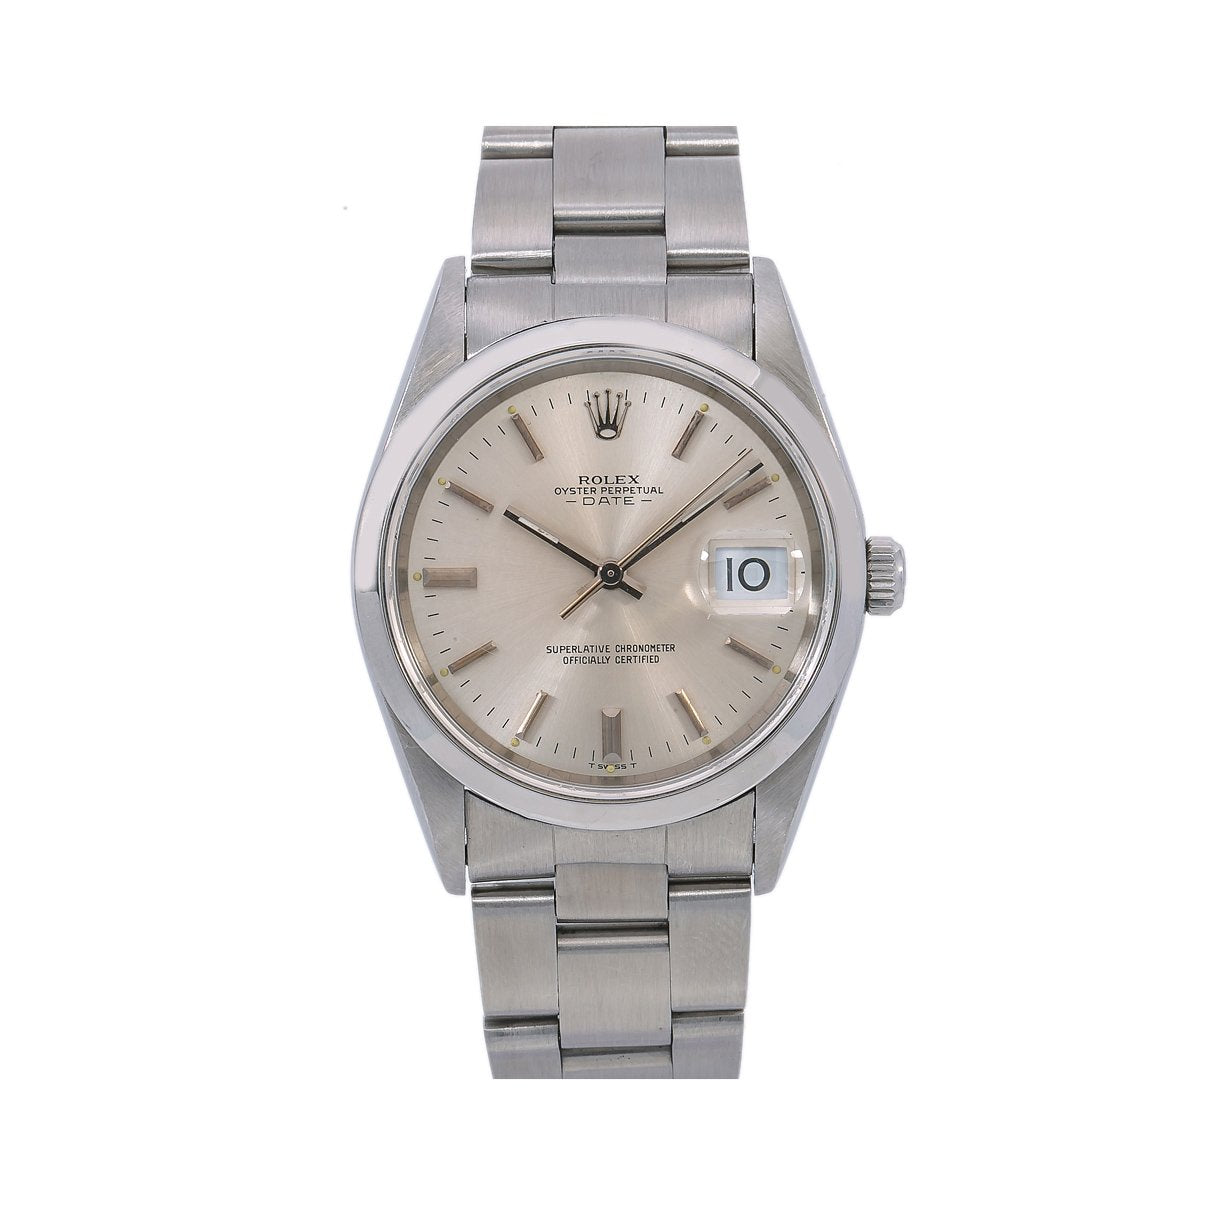 Rolex Oyster Perpetual Date 34MM Silver Dial With Stainless Steel Oyster Bracelet